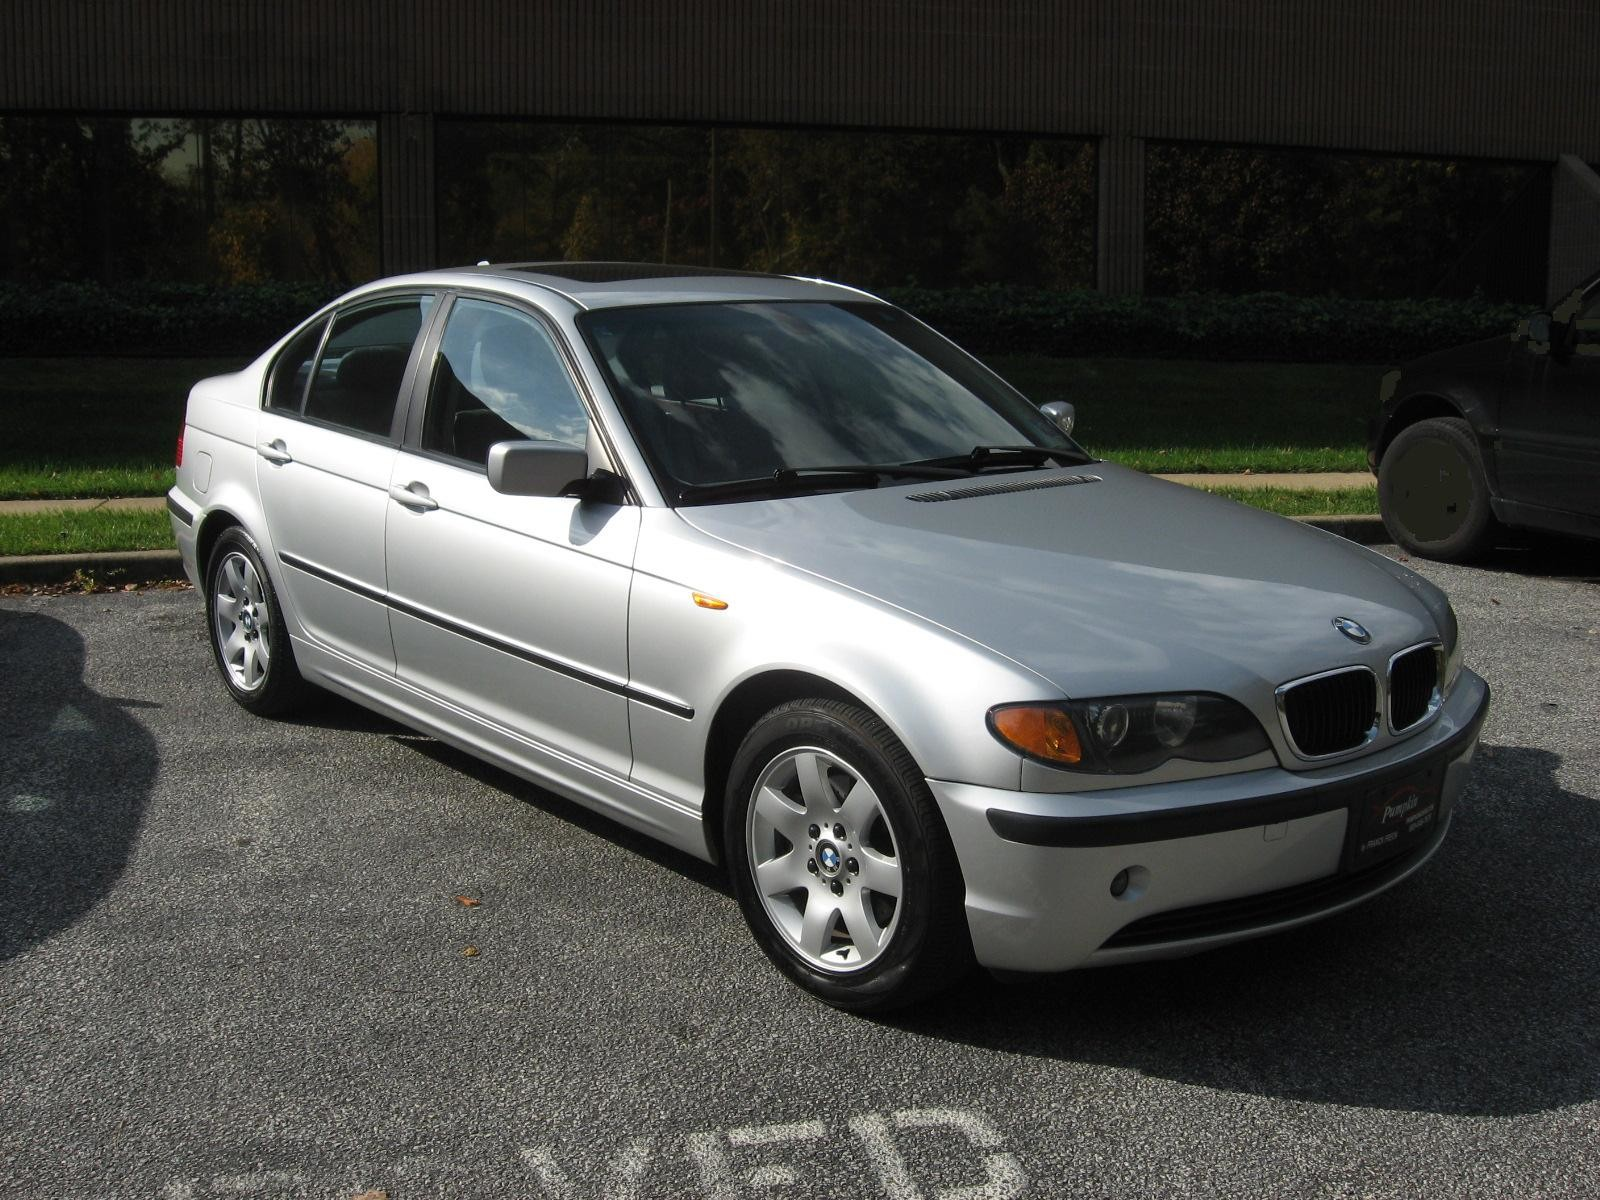 PHOTO PROVIDEDTommy Brailey drives a silver 2004 BMW 325i with S.C. license plate LYB406. His vehicle also has a chrome Pittsburgh Steelers front license plate. This is not a photo of Brailey's personal vehicle.